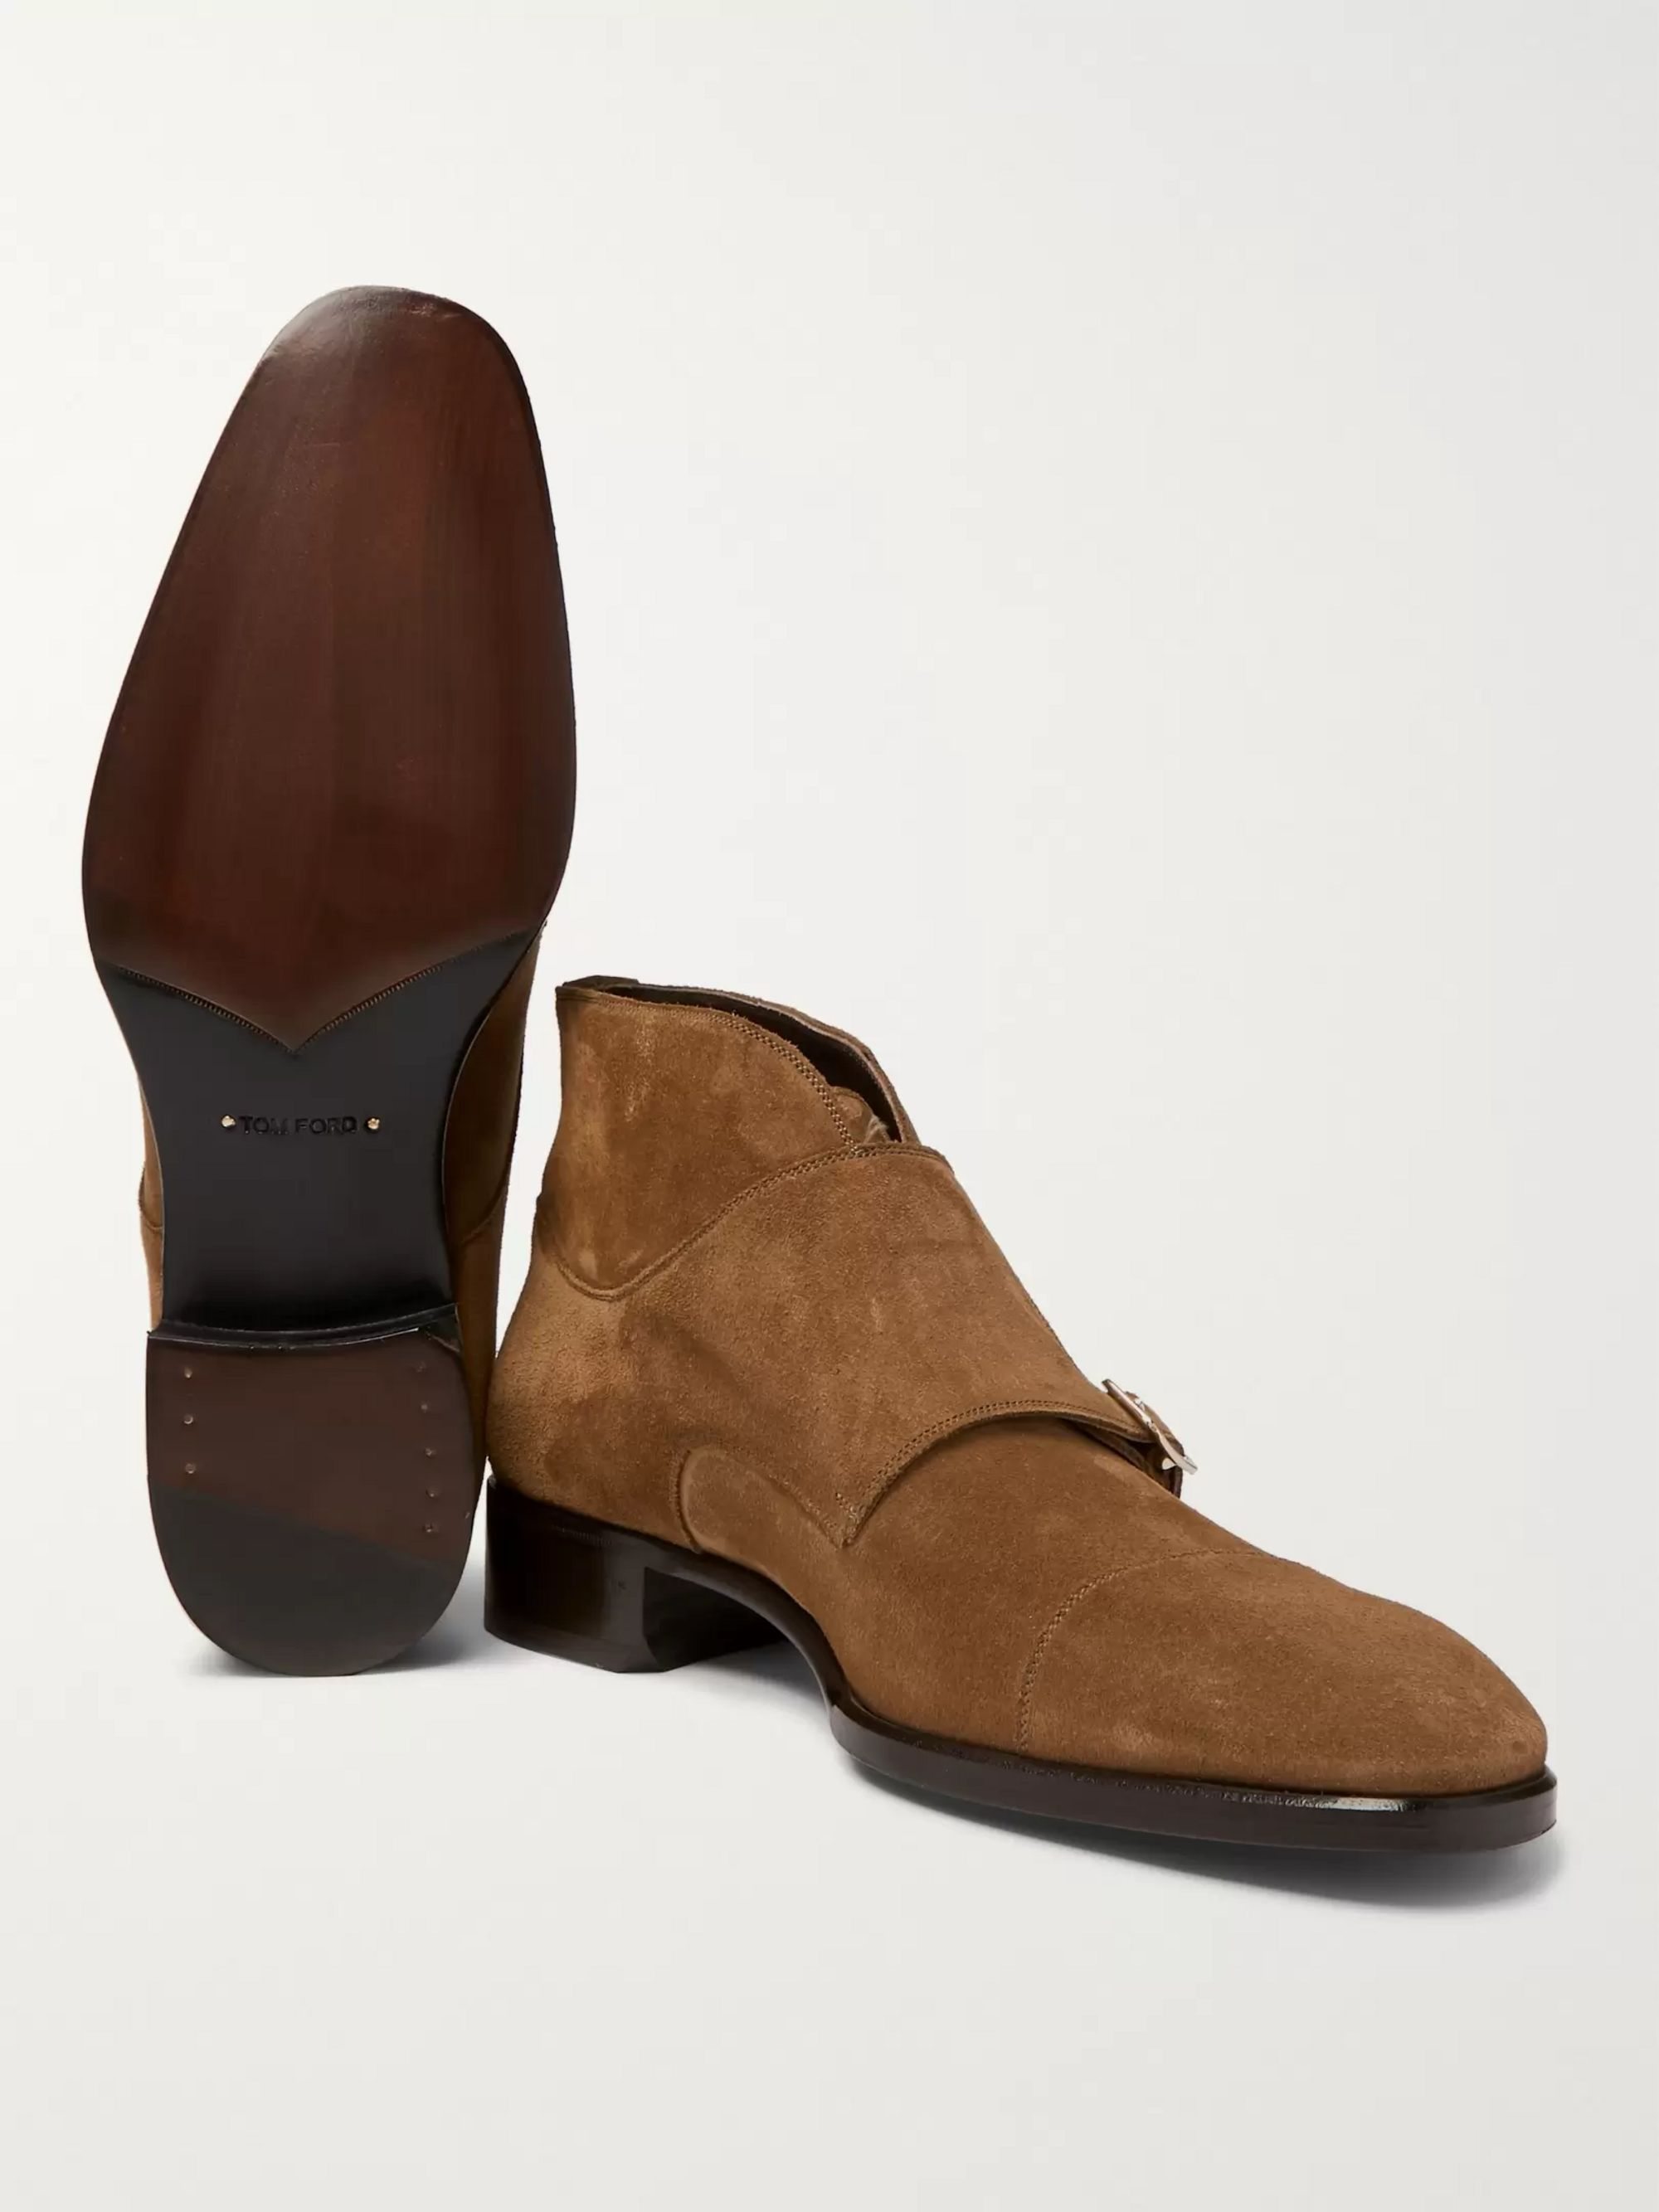 TOM FORD Sutherland Suede Monk-Strap Boots